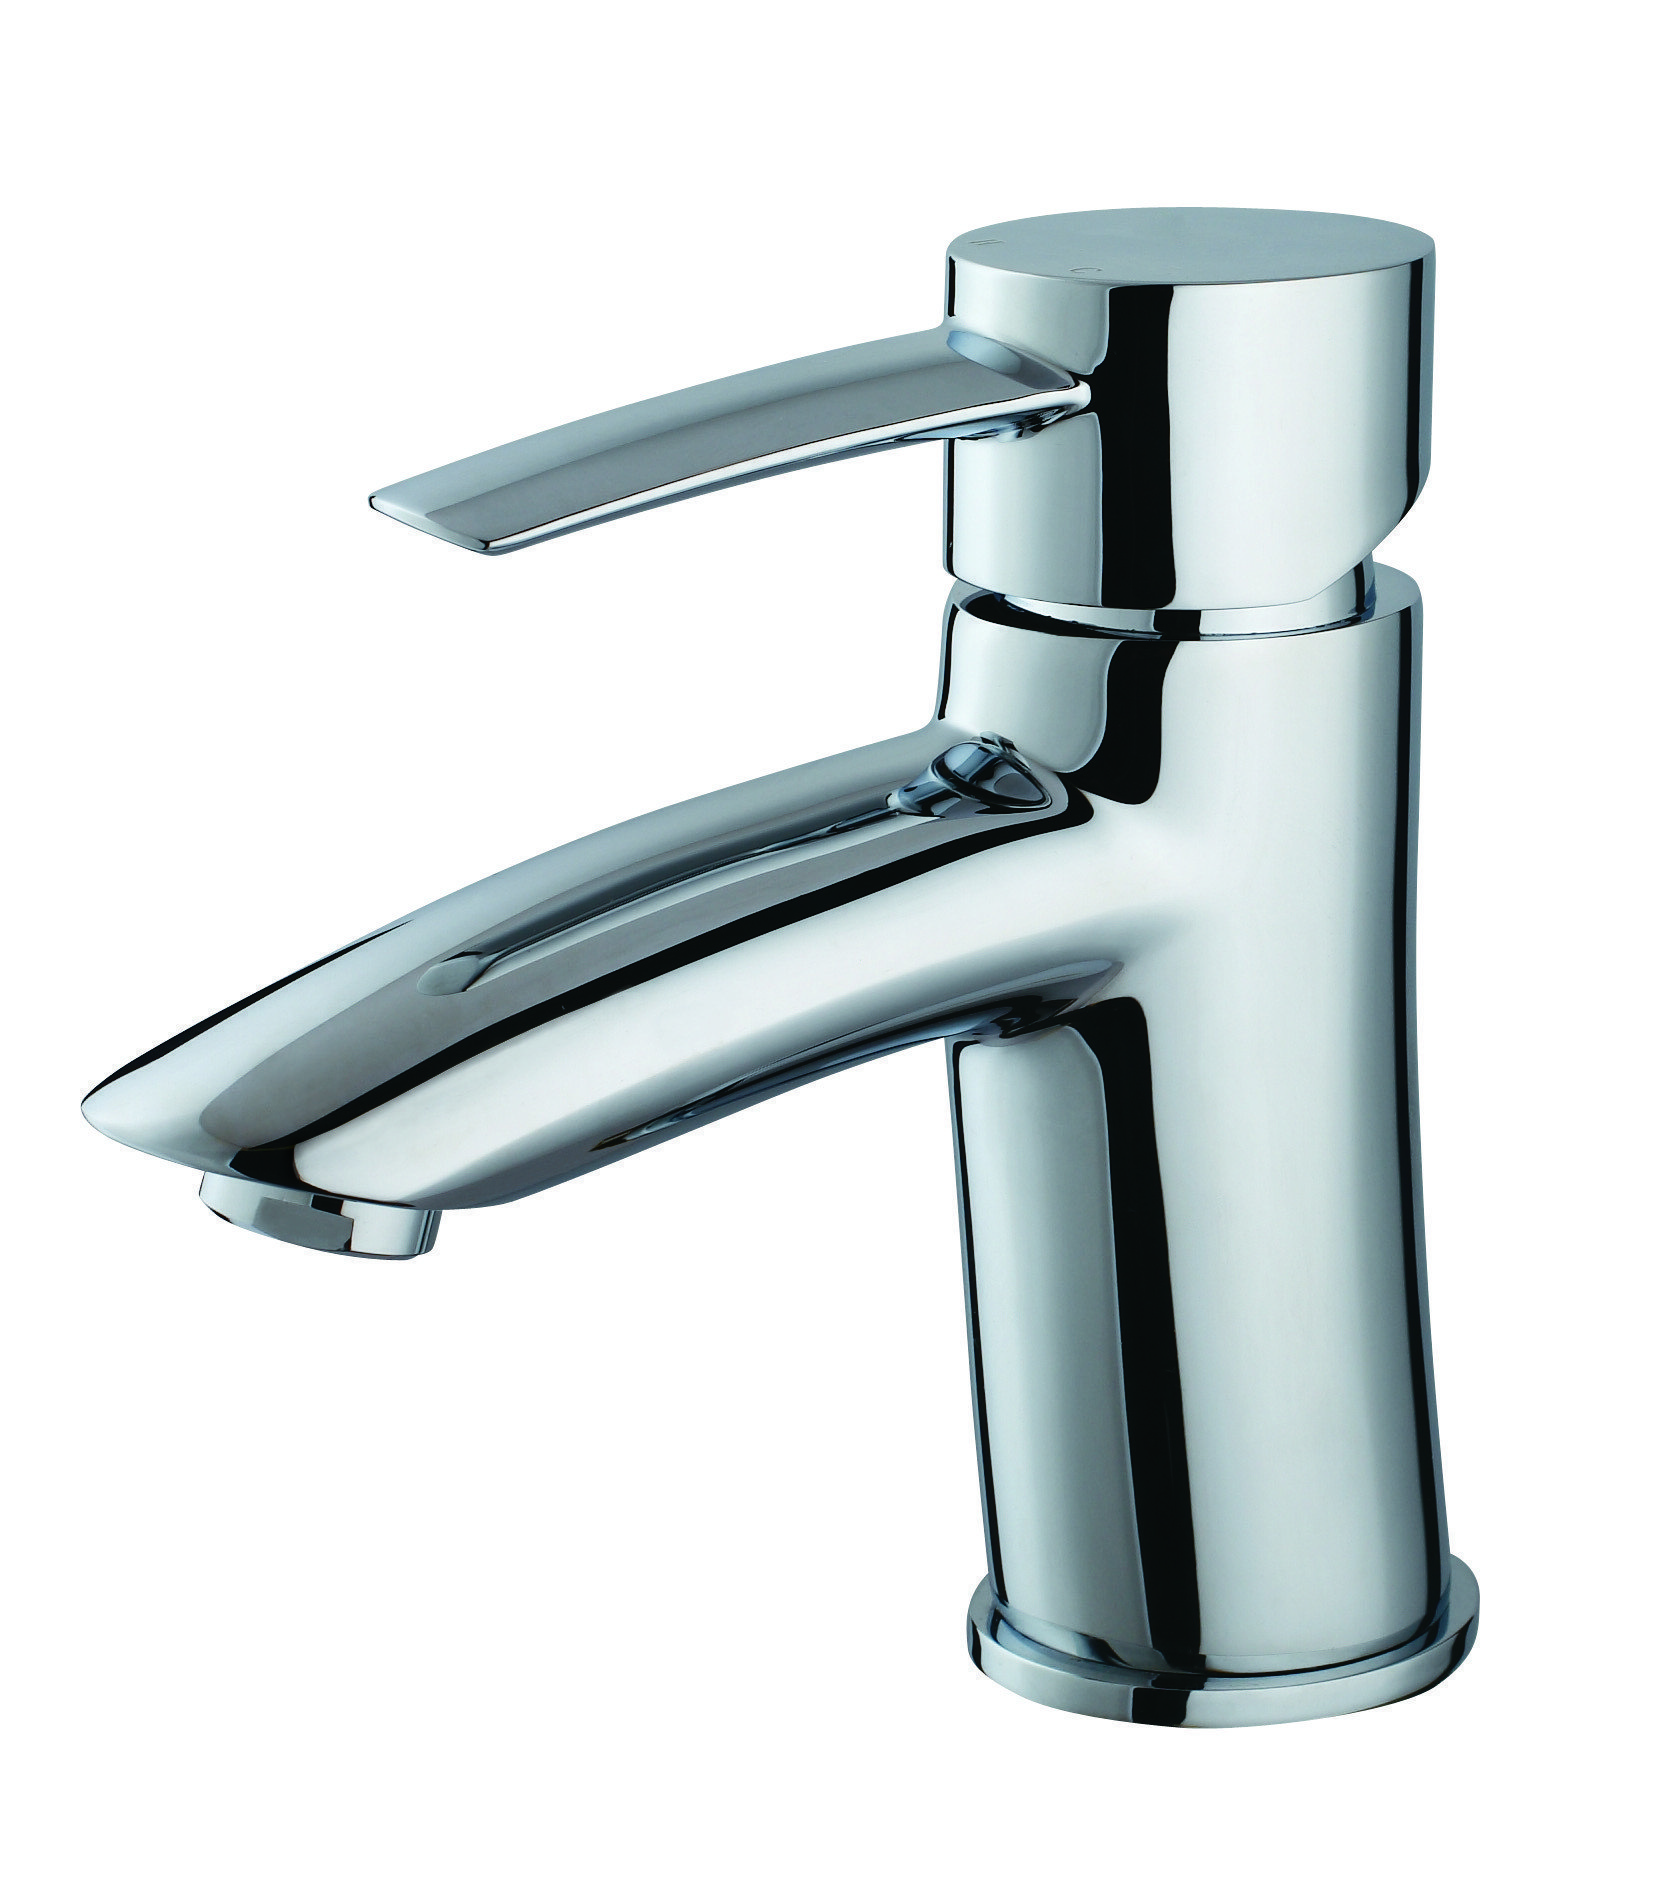 bathroom image design sink the of leaking delta hole repairing epic faucet